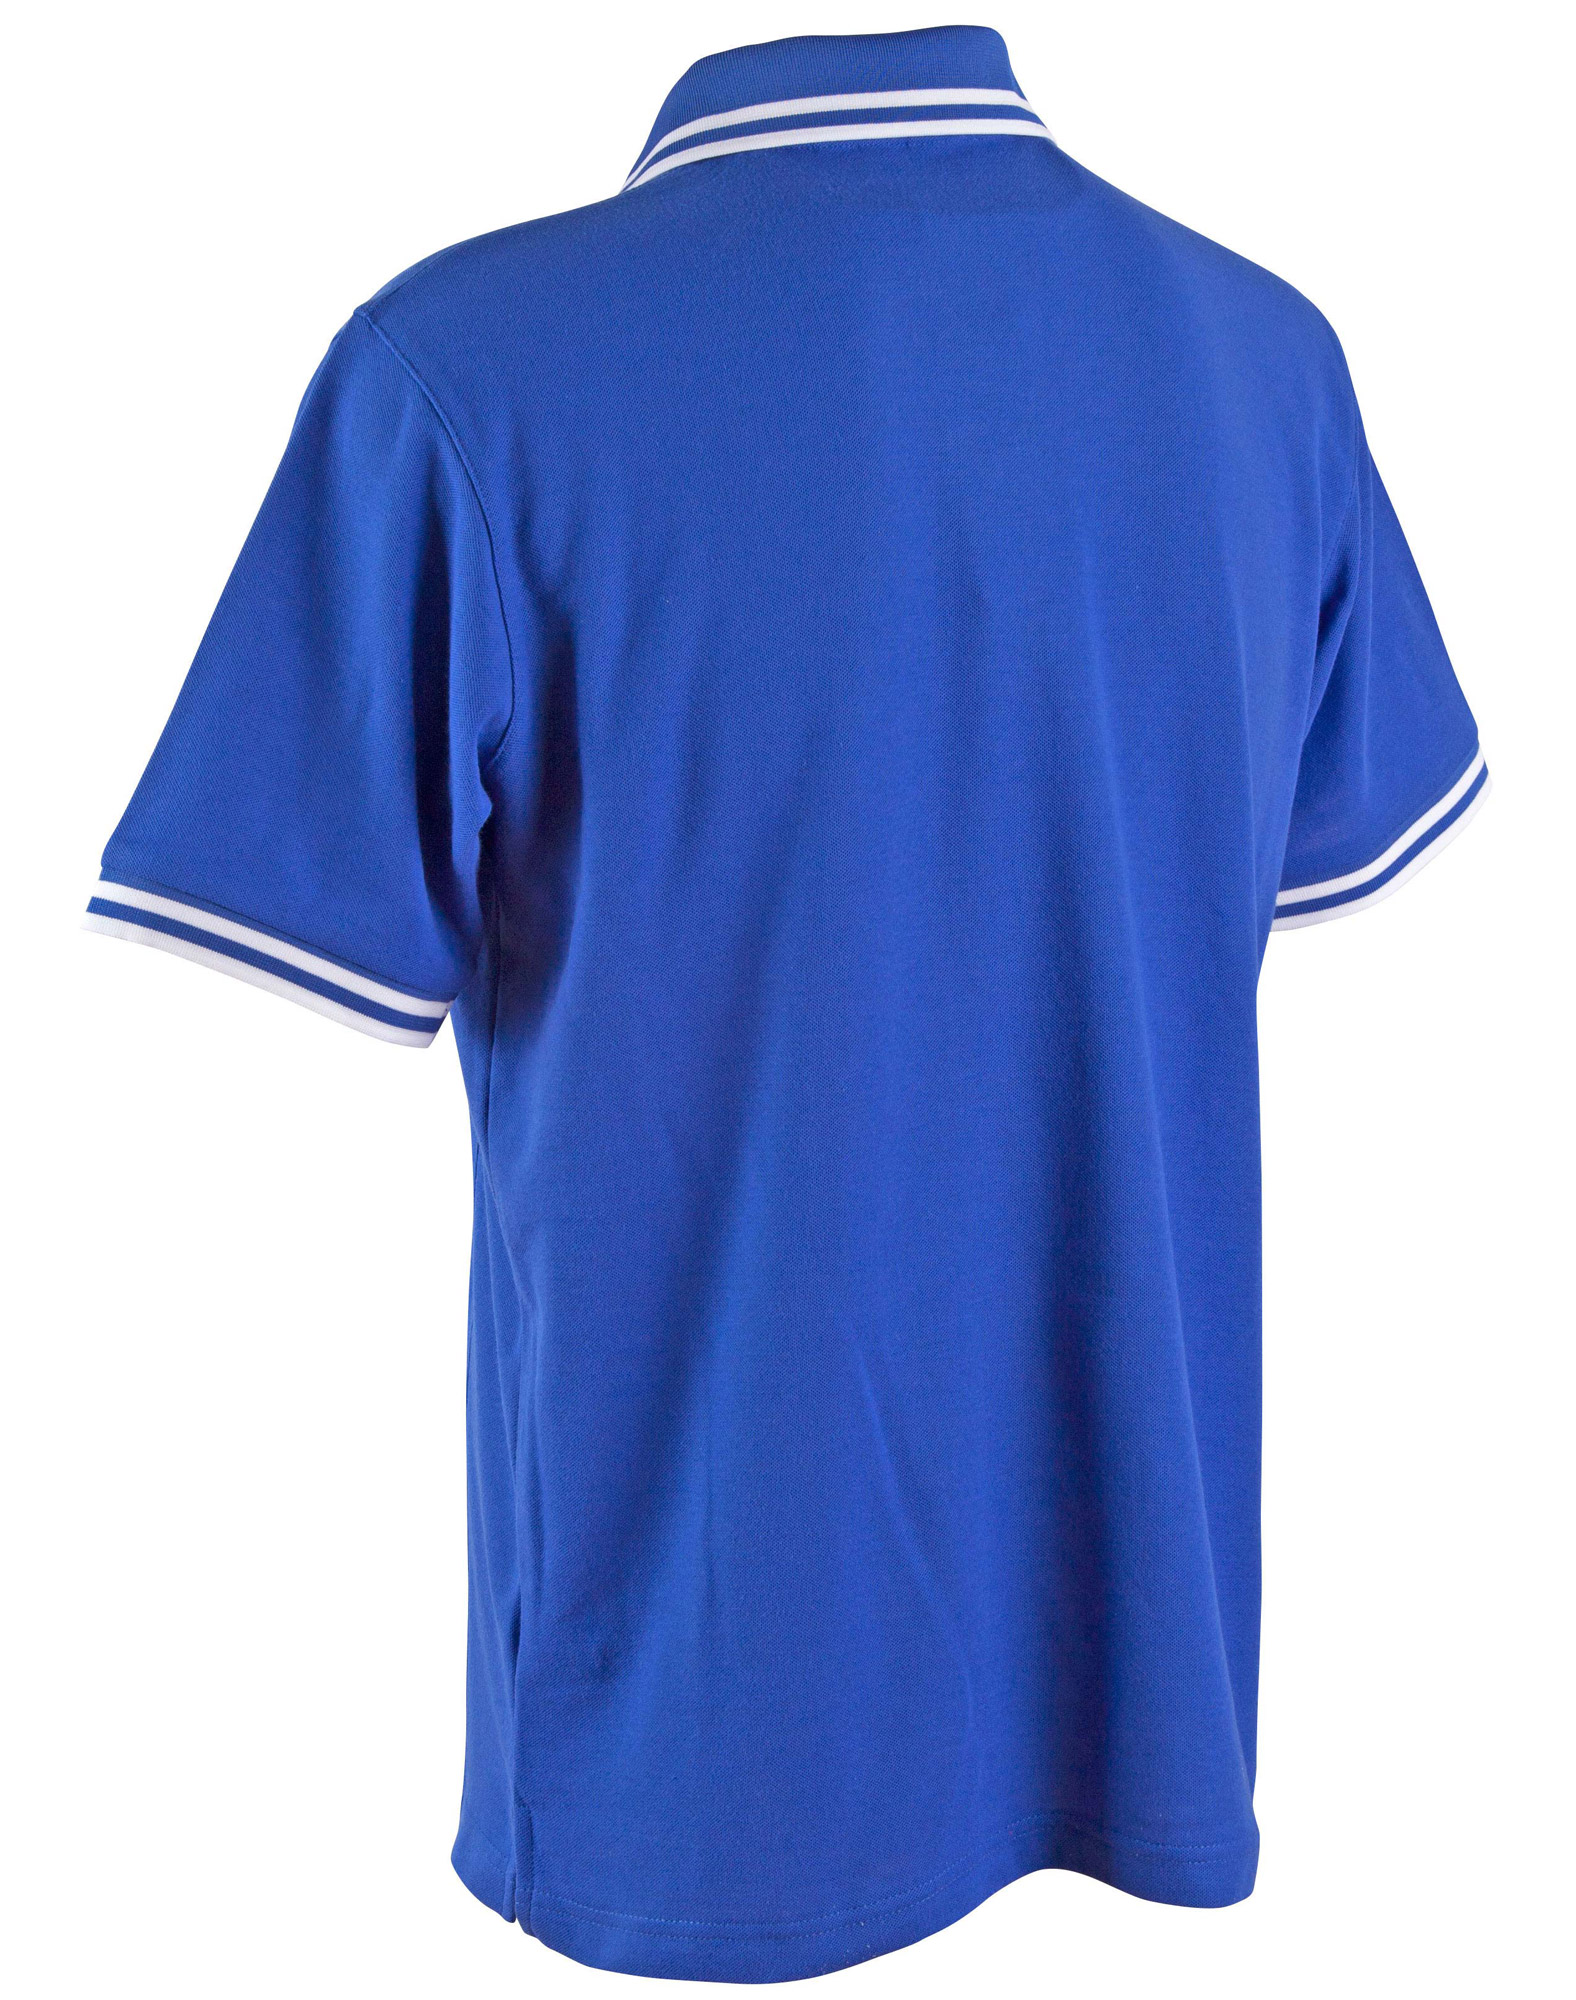 http://ws-imgs.s3.amazonaws.com/POLOSHIRTS/PS65_Royal.White_BackSide_l.jpg